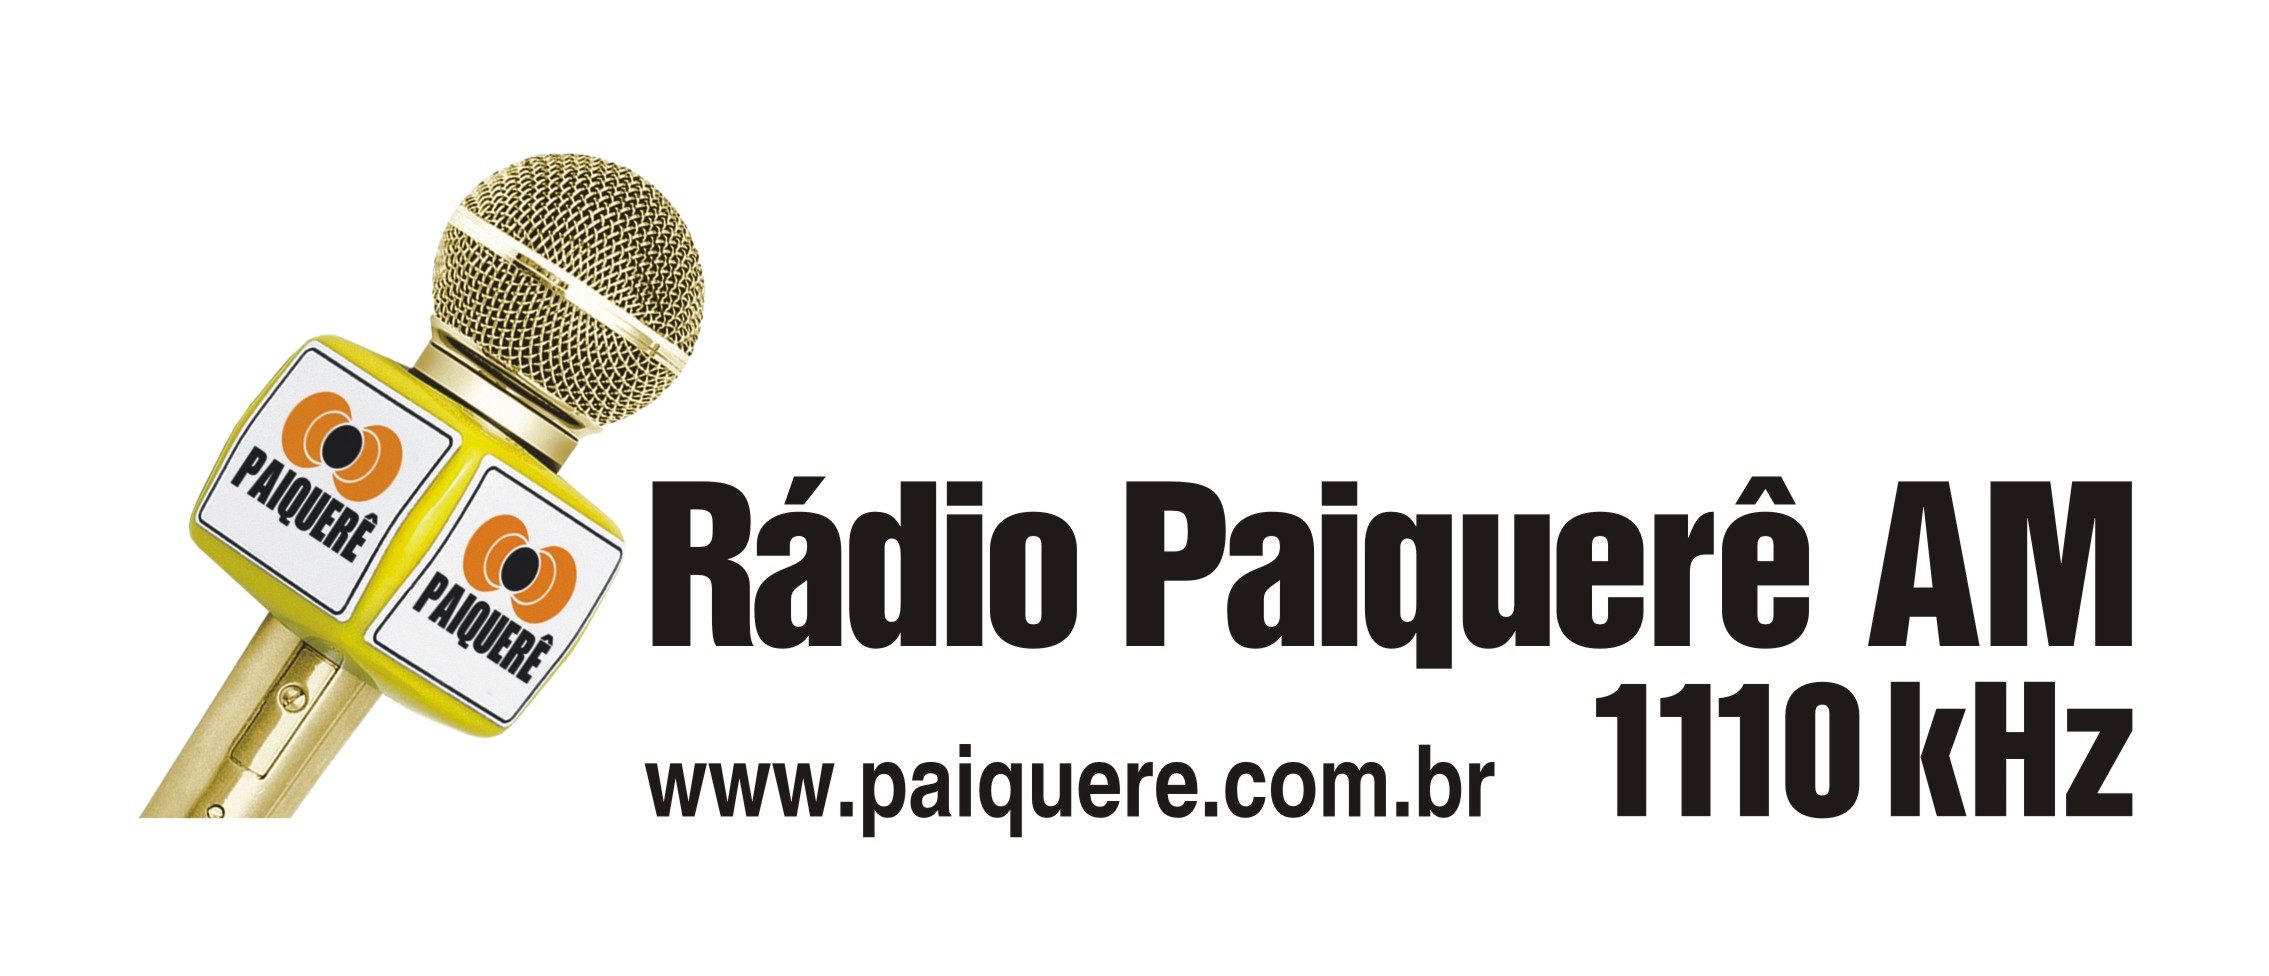 Paiquerê AM